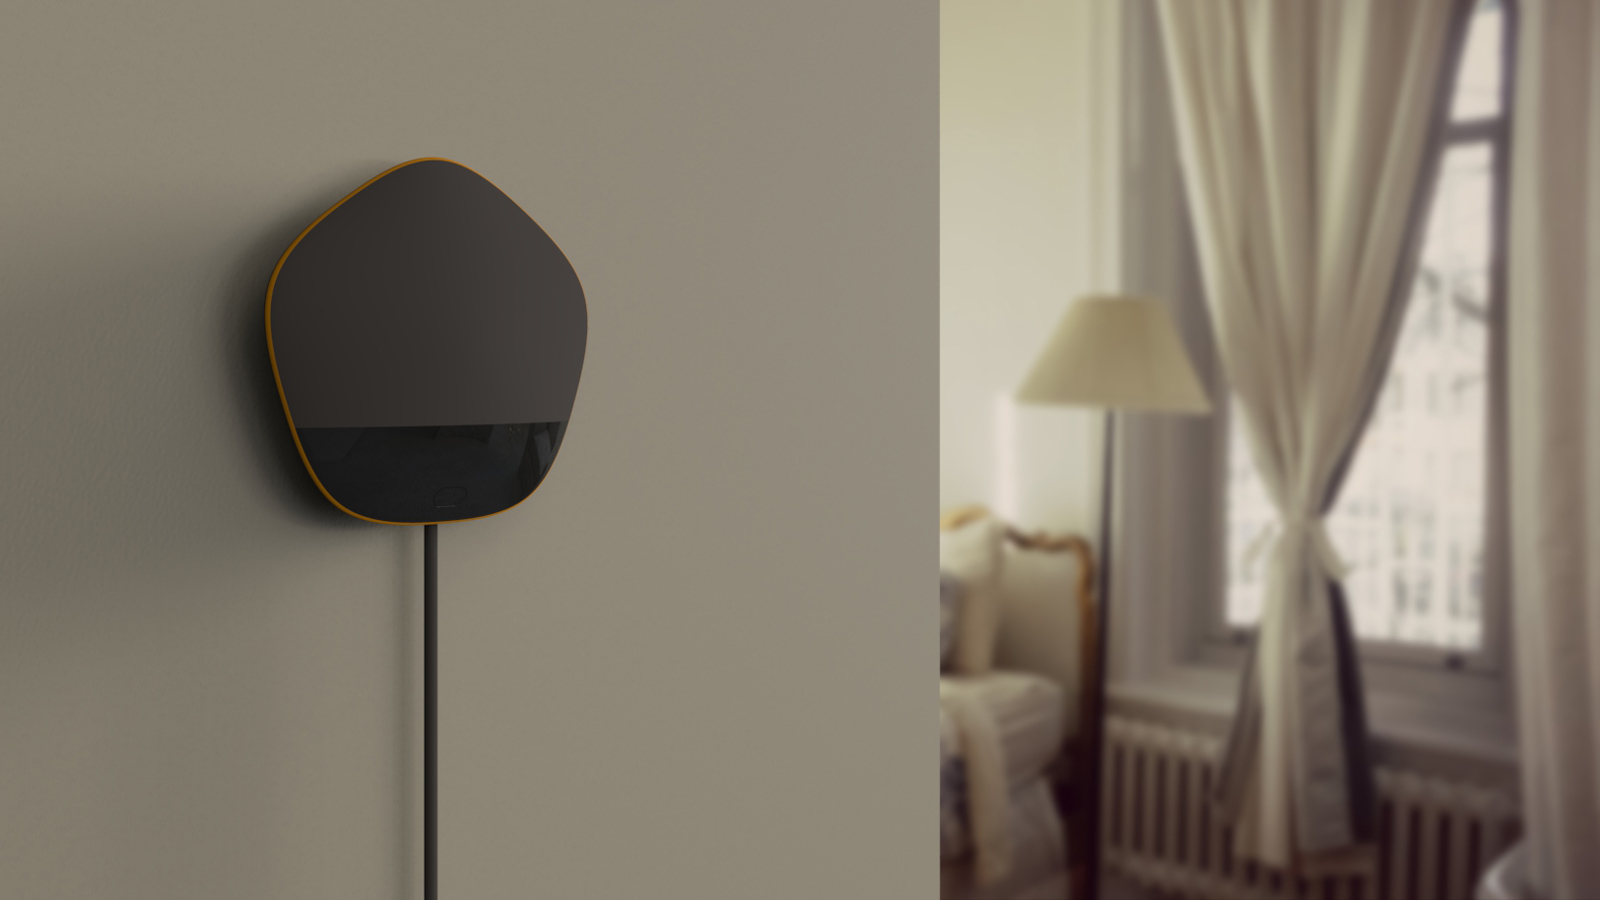 Leaf Technologies Launches its Smart Home Product Air in India